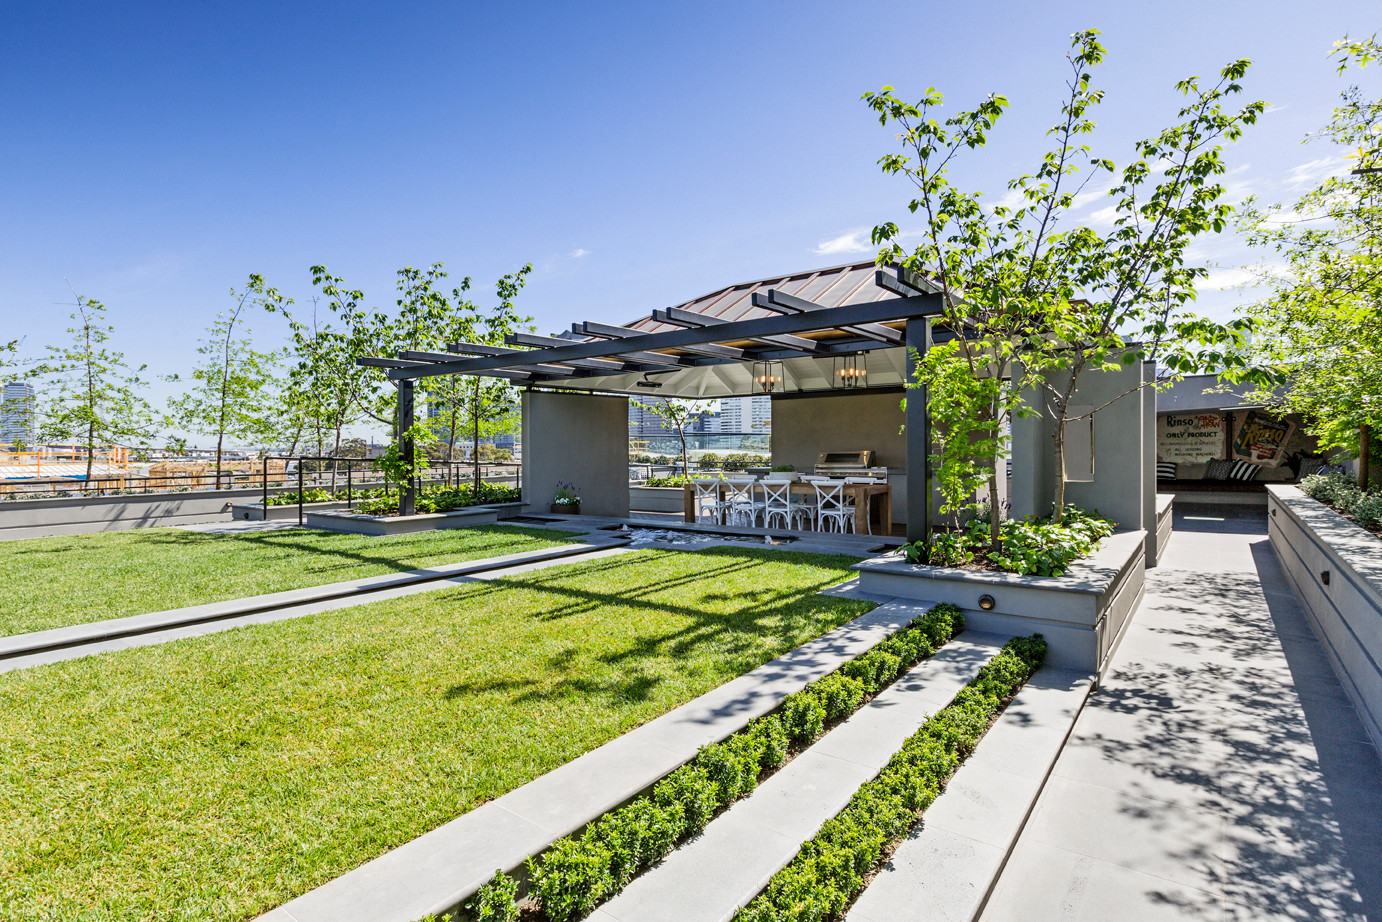 The Block 'Rooftop' - Ingles St, Port Melbourne.